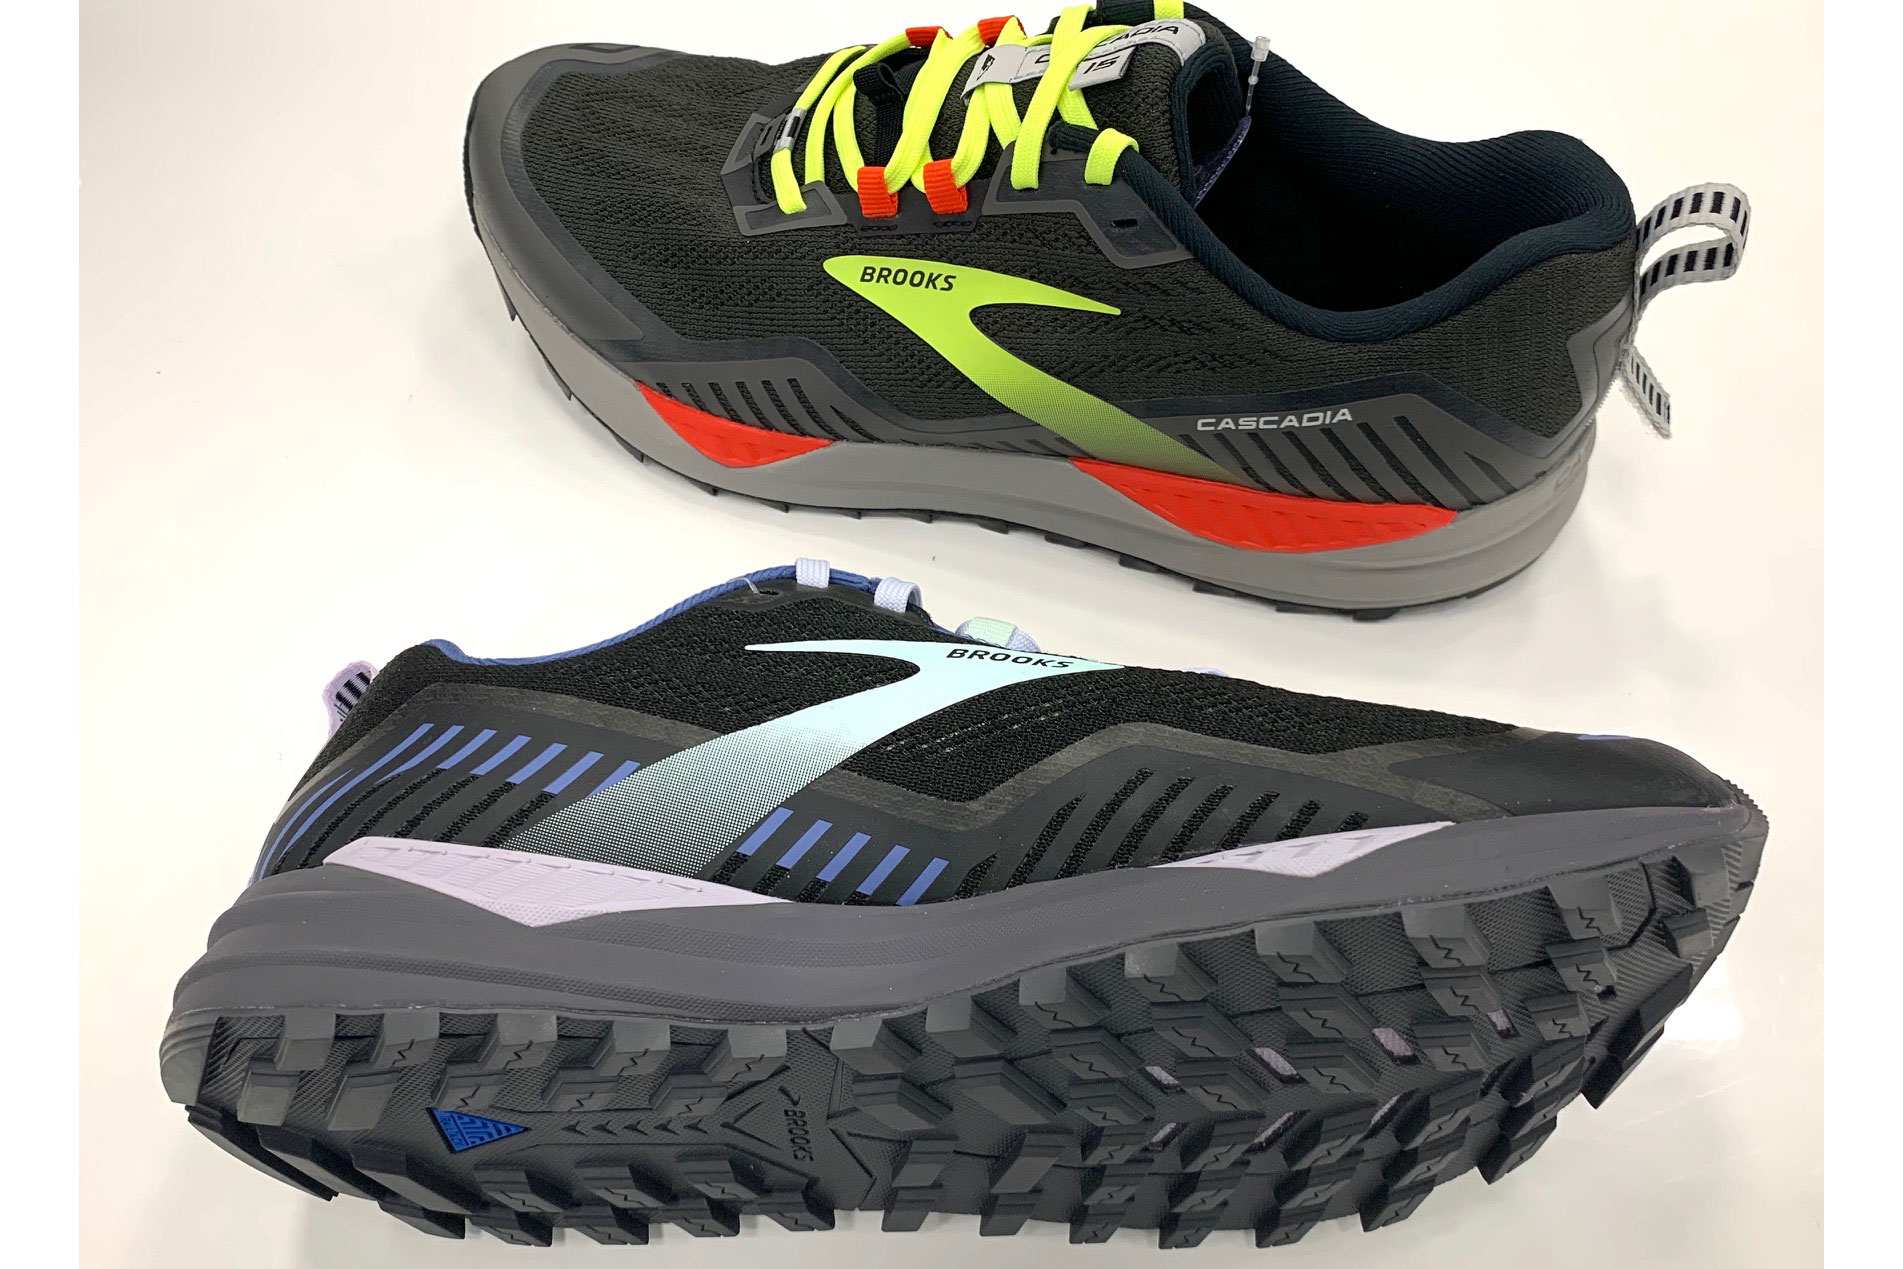 Brooks Cascadia running shoe